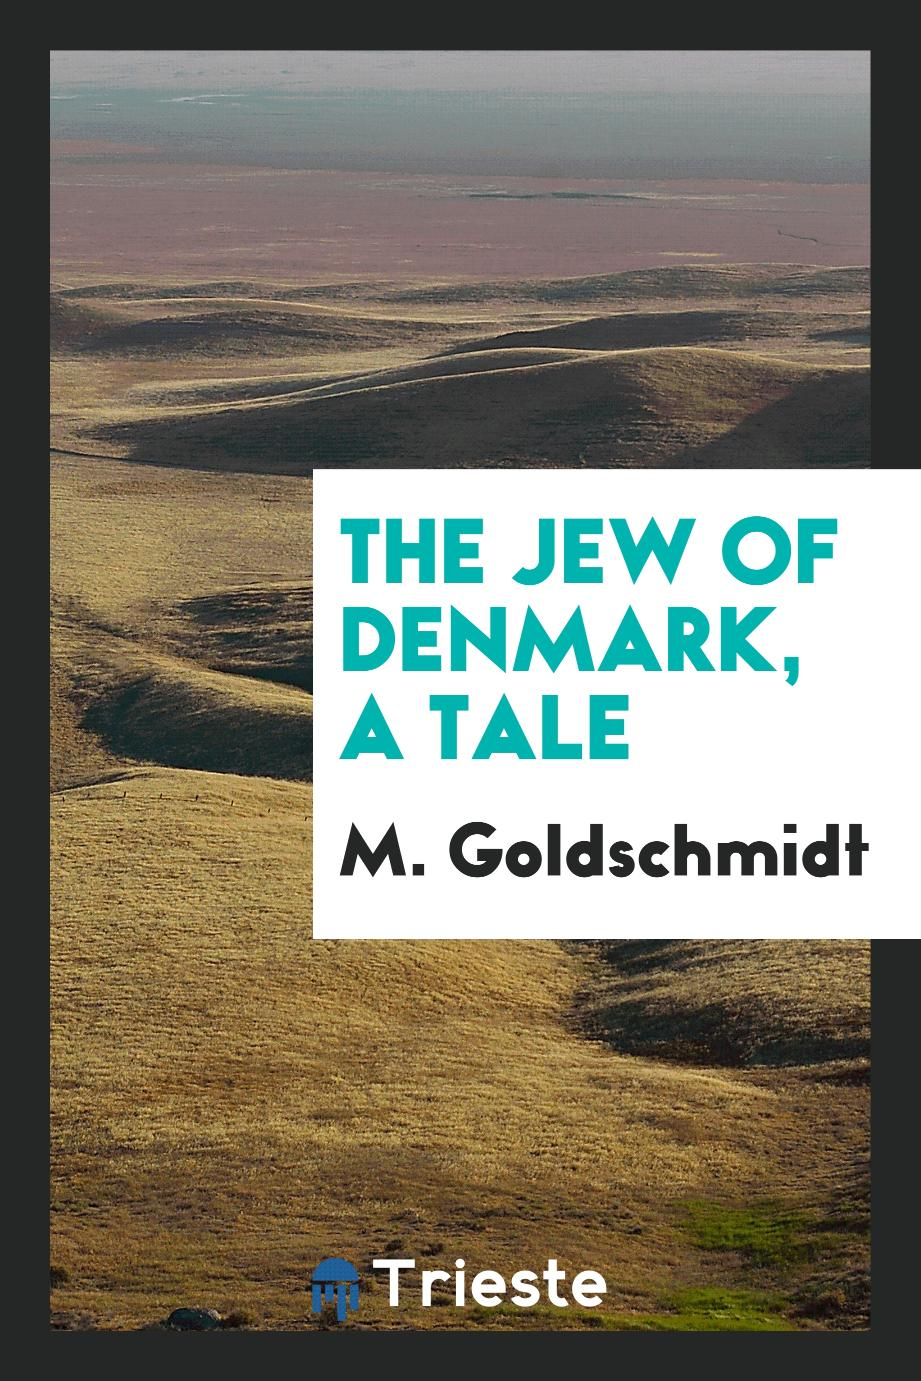 The Jew of Denmark, a tale